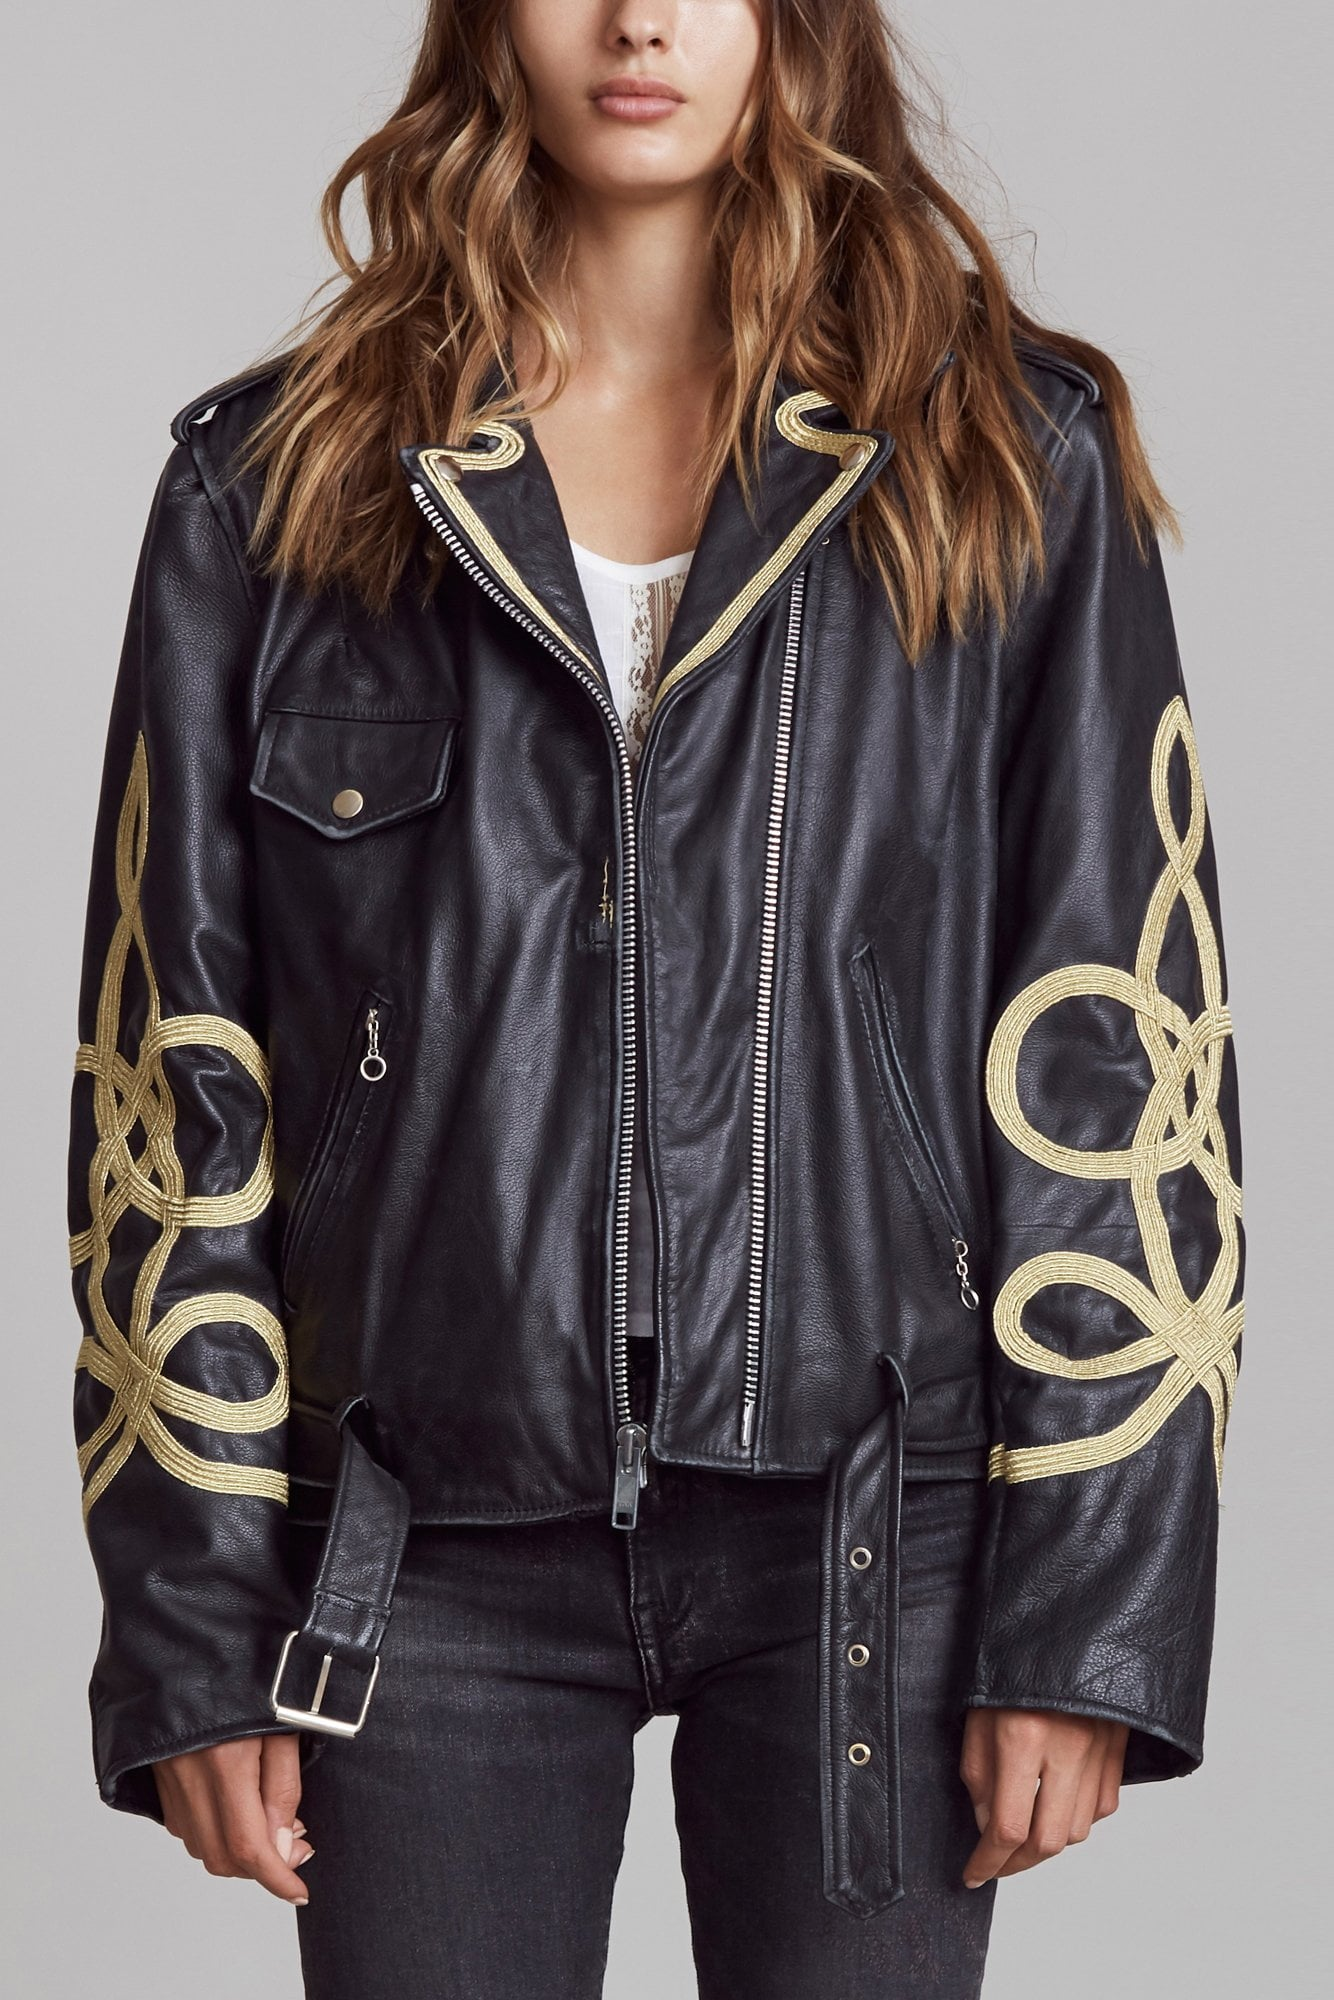 Motorcycle Jacket with Sleeve Braids